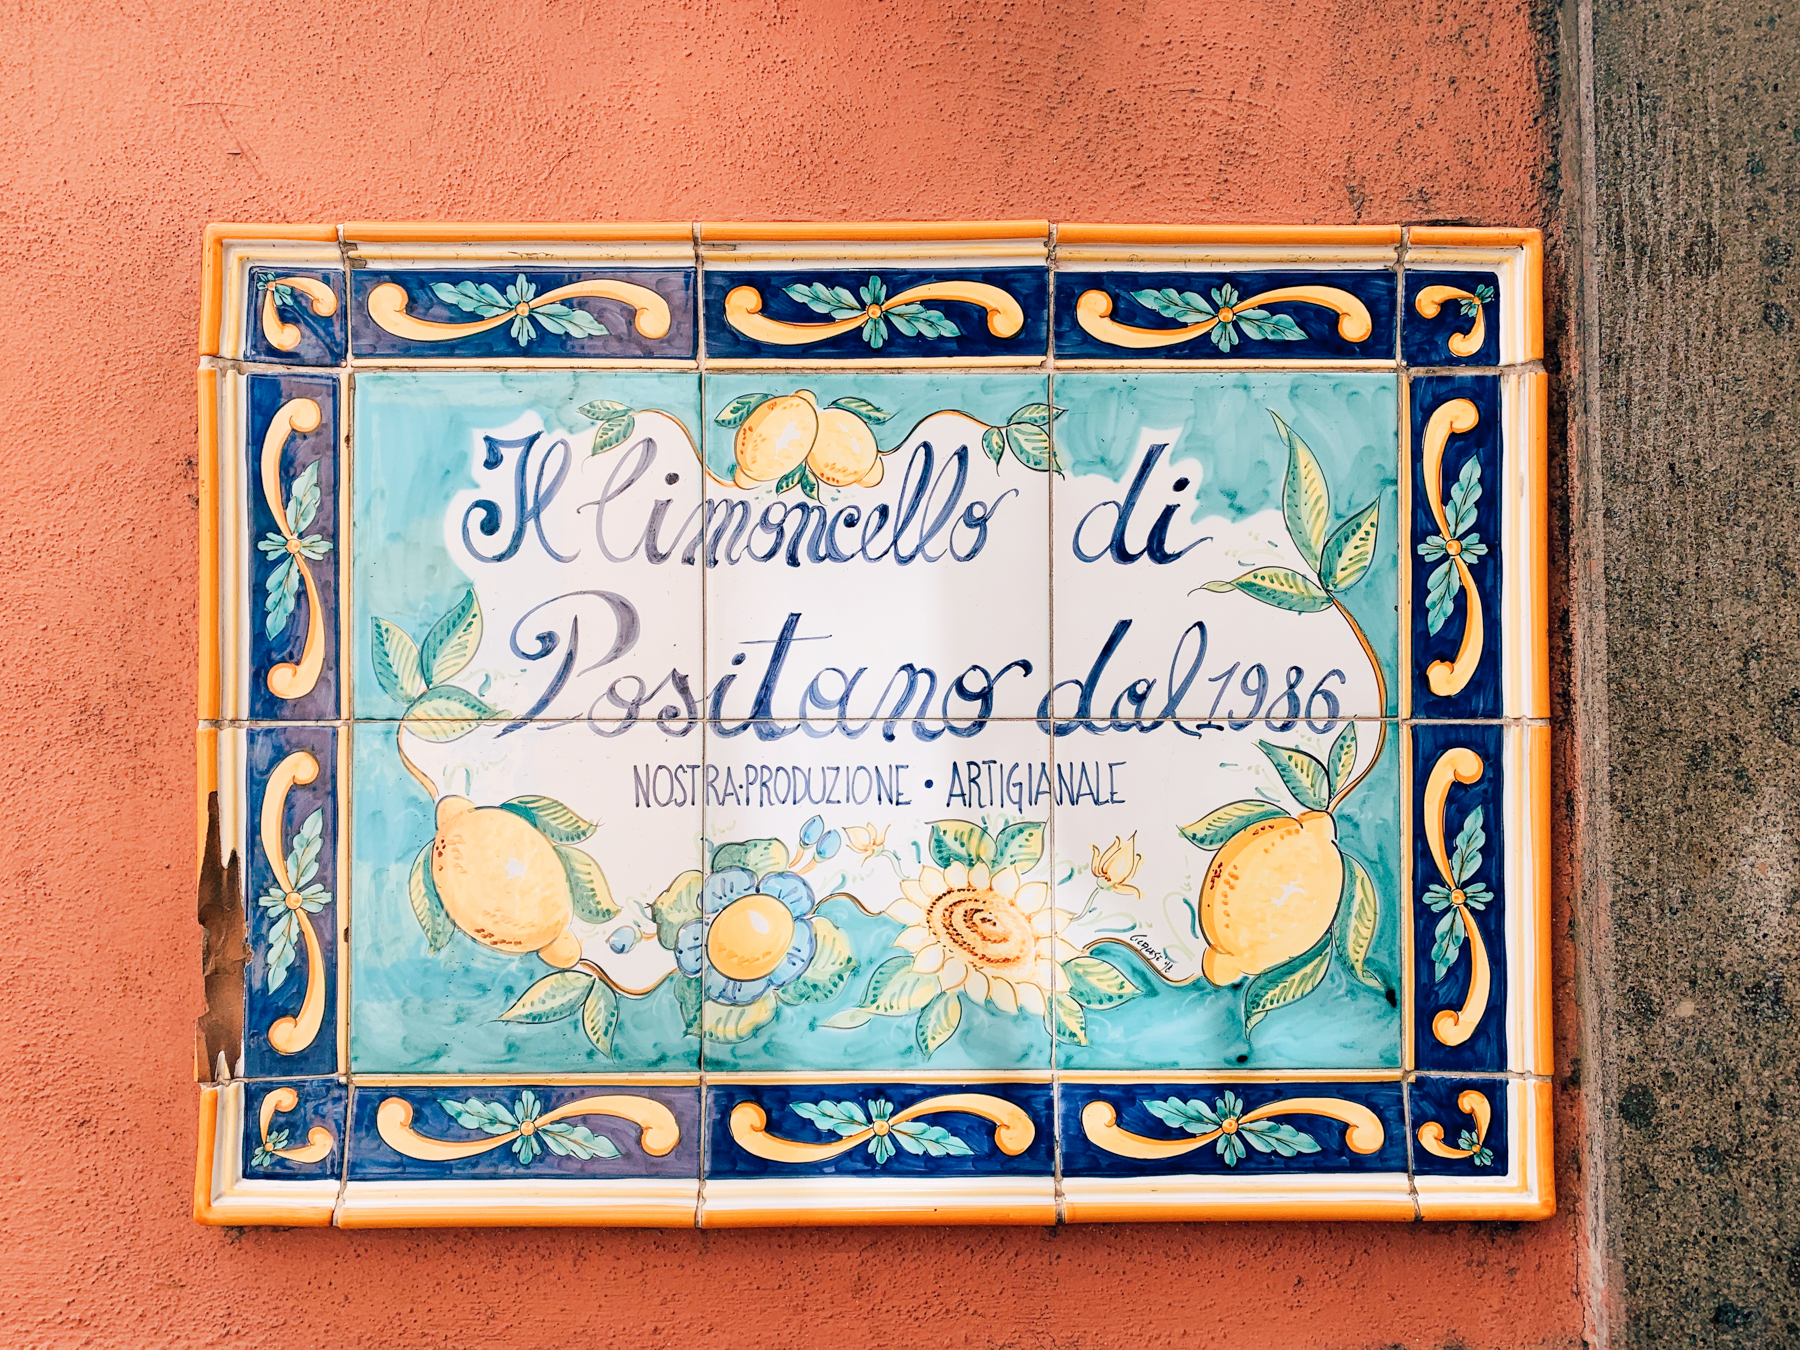 The Amalfi coast is known for it's lemons which are beautifully painted on everything!